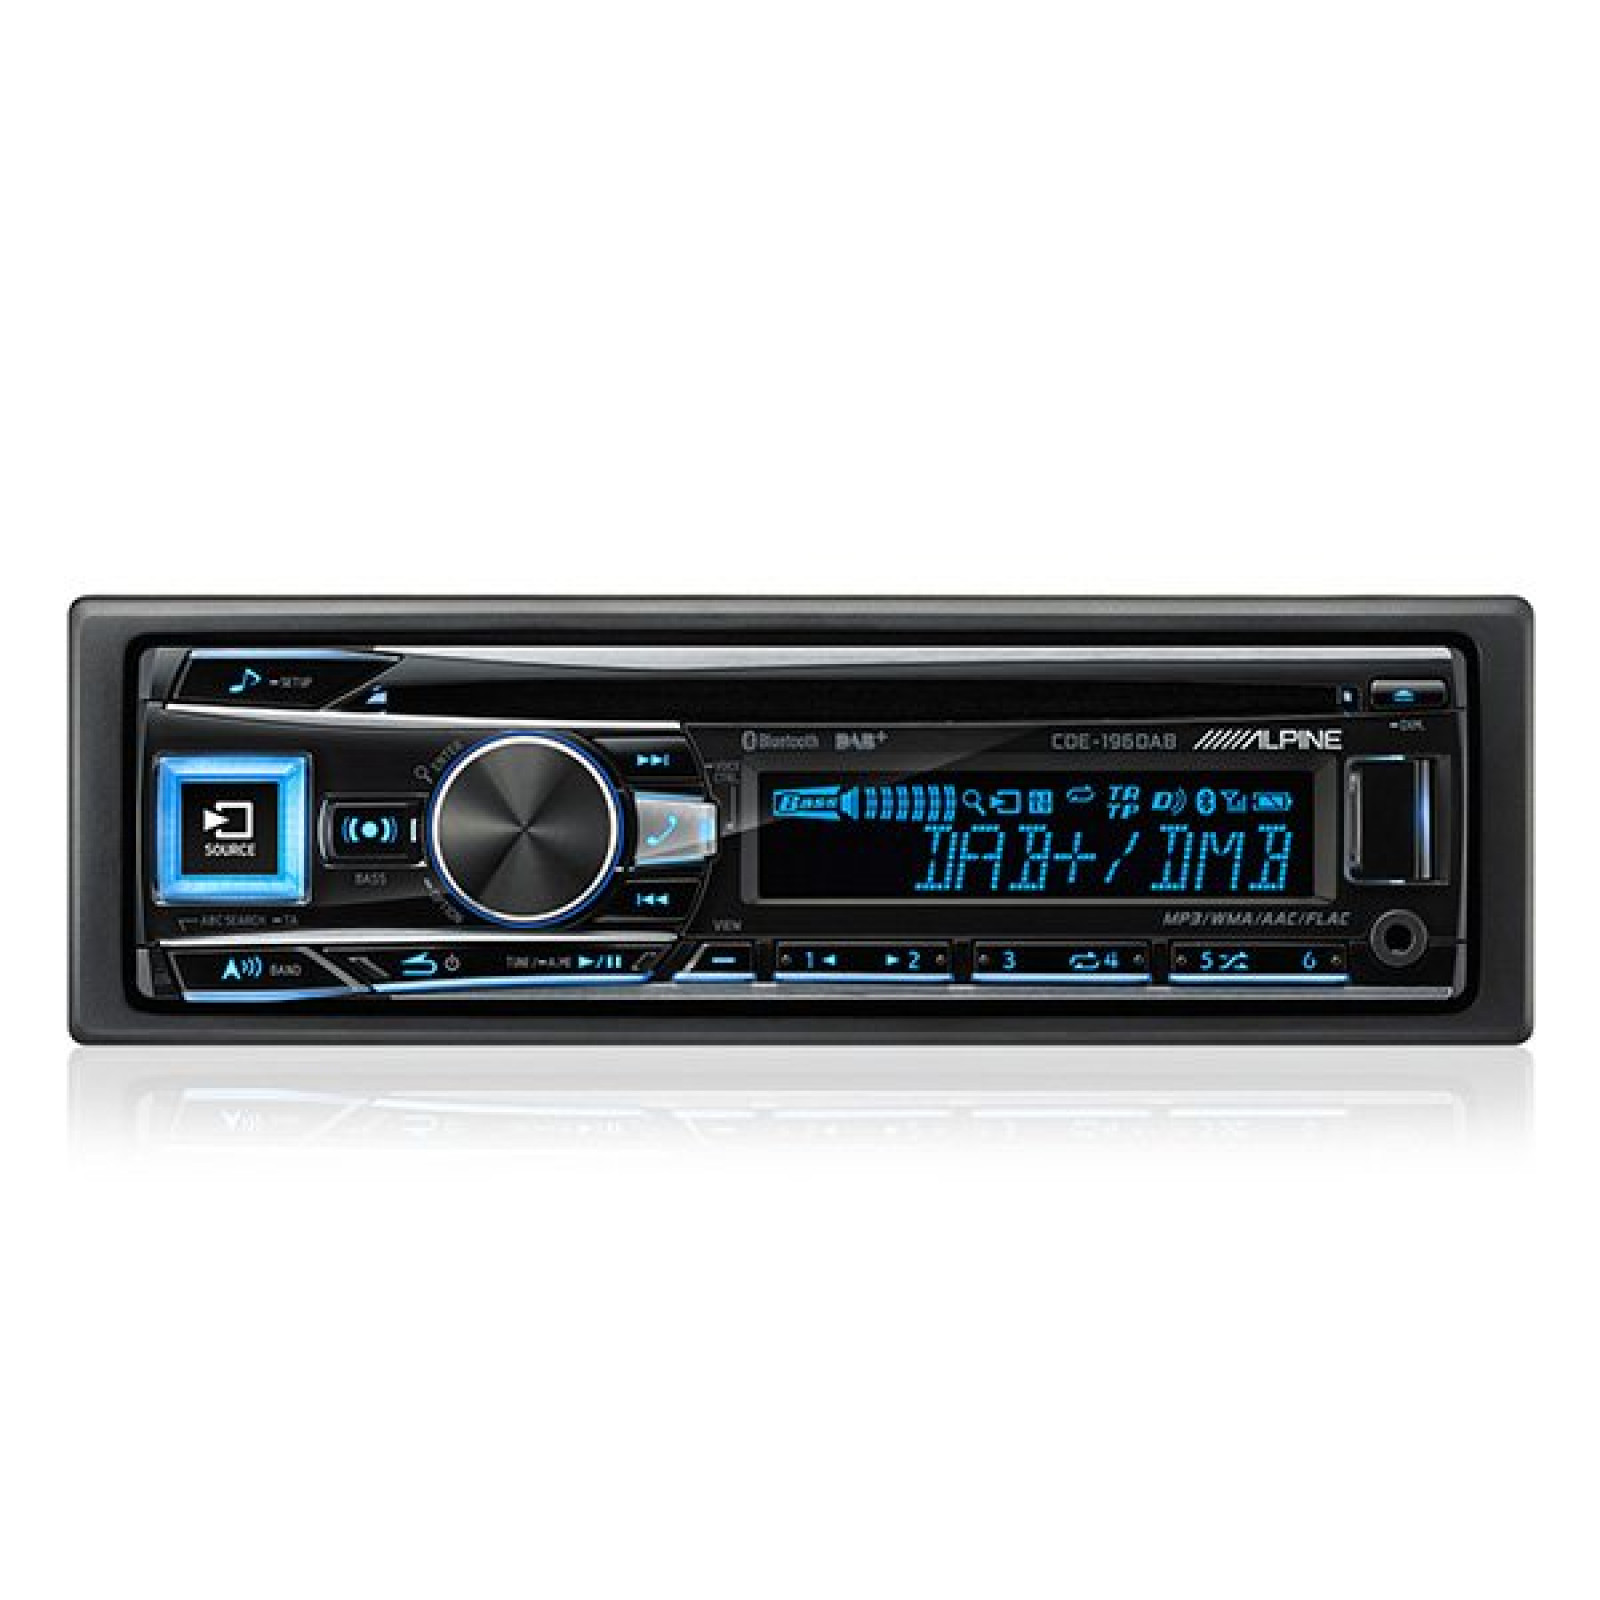 pioneer stereo wiring diagram sequence reservation alpine cde-196dab single din radio cd mp3 bluetooth usb player head unit | the sl shop